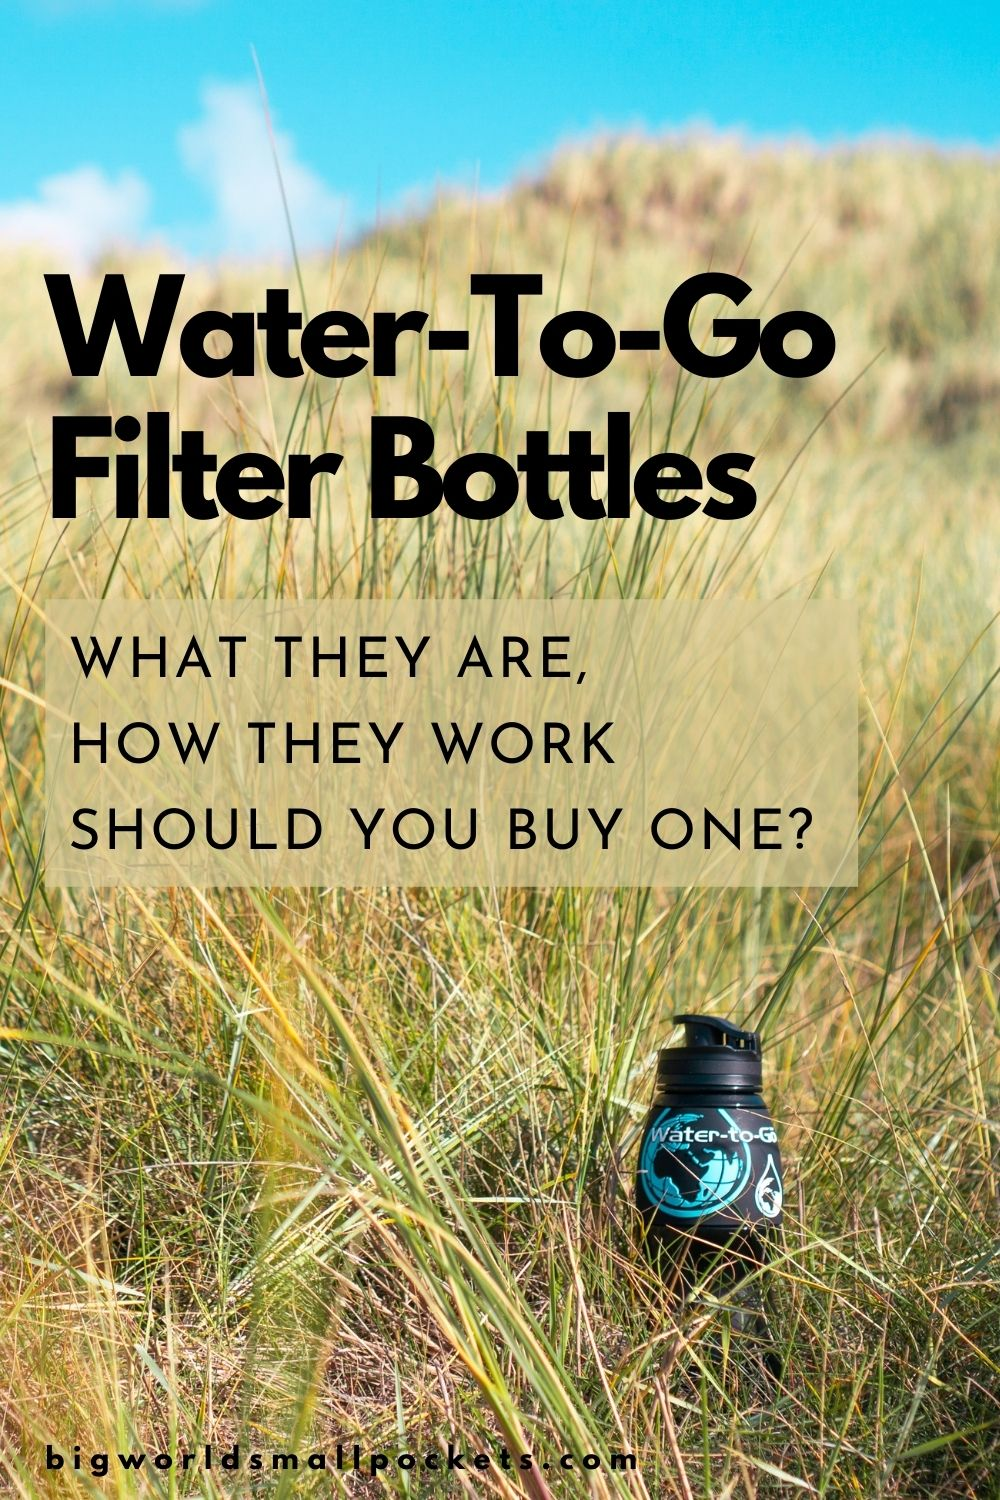 Water-To-Go Filter Bottles Are They Worth It